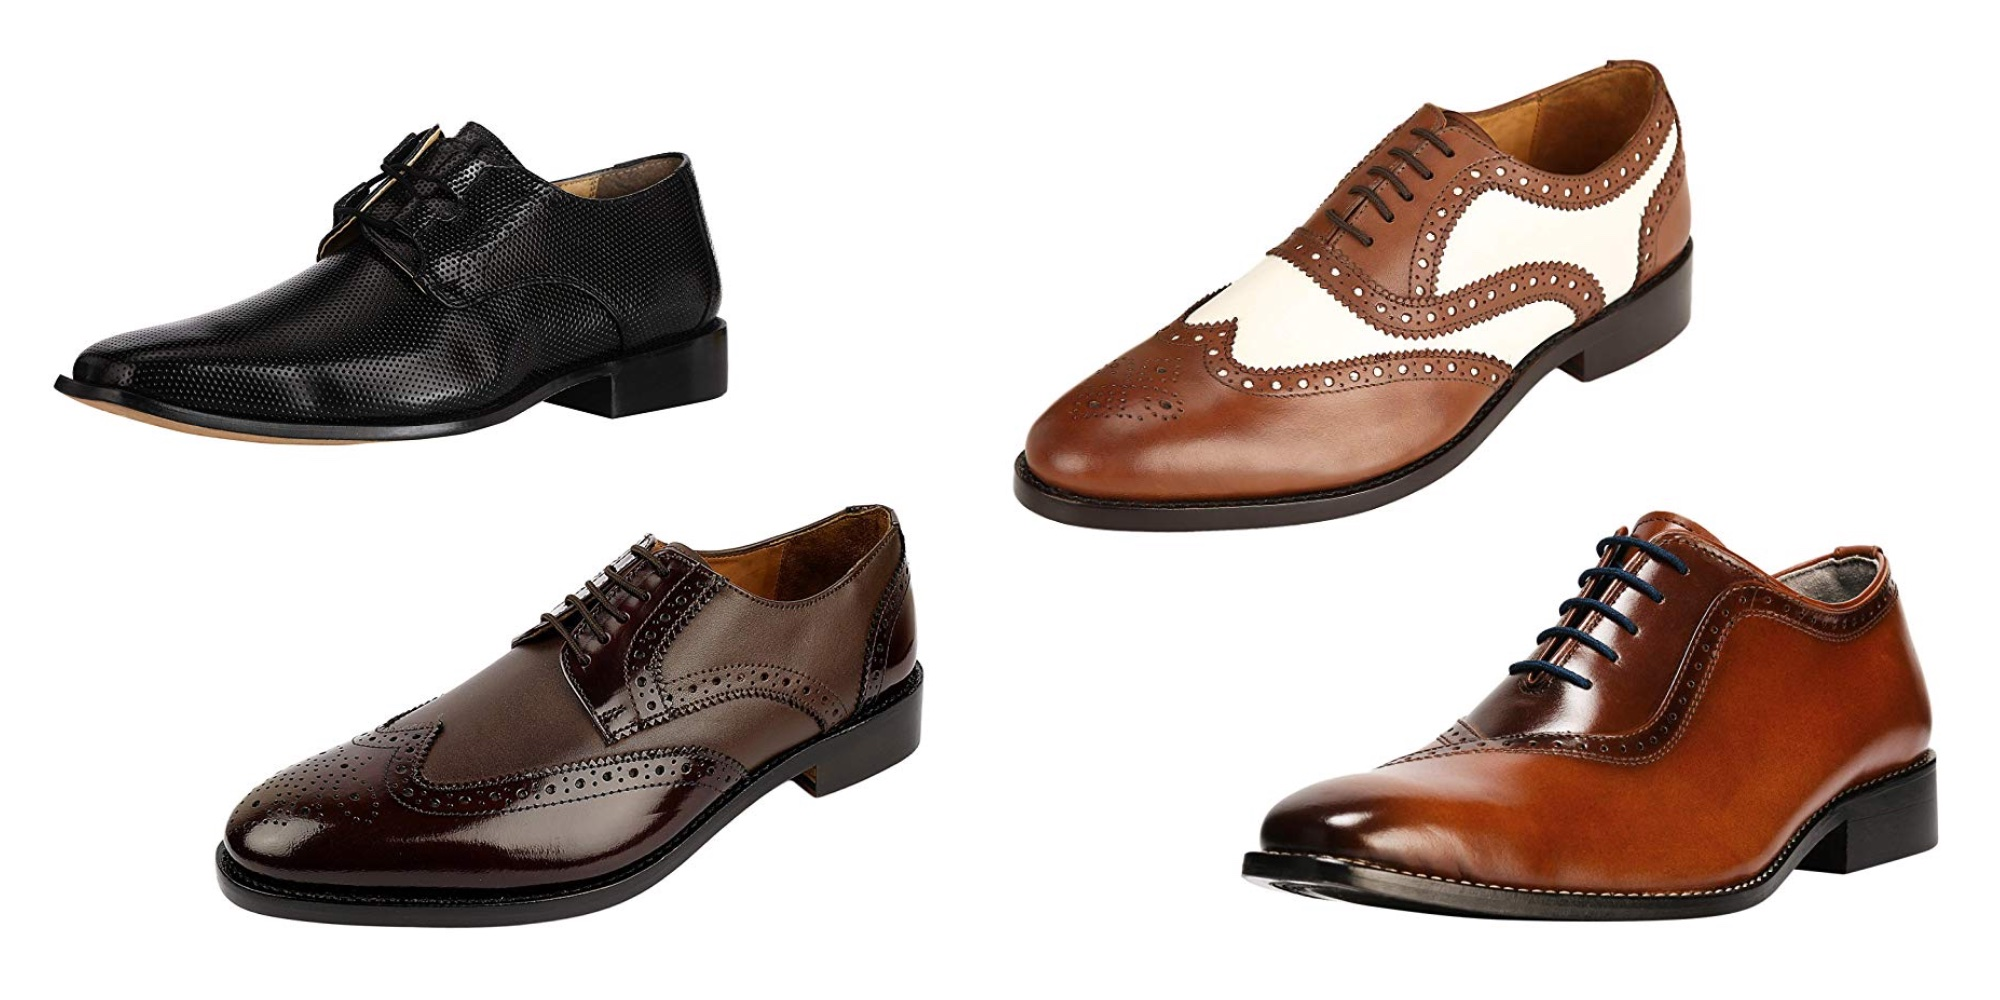 off men's leather dress shoes from